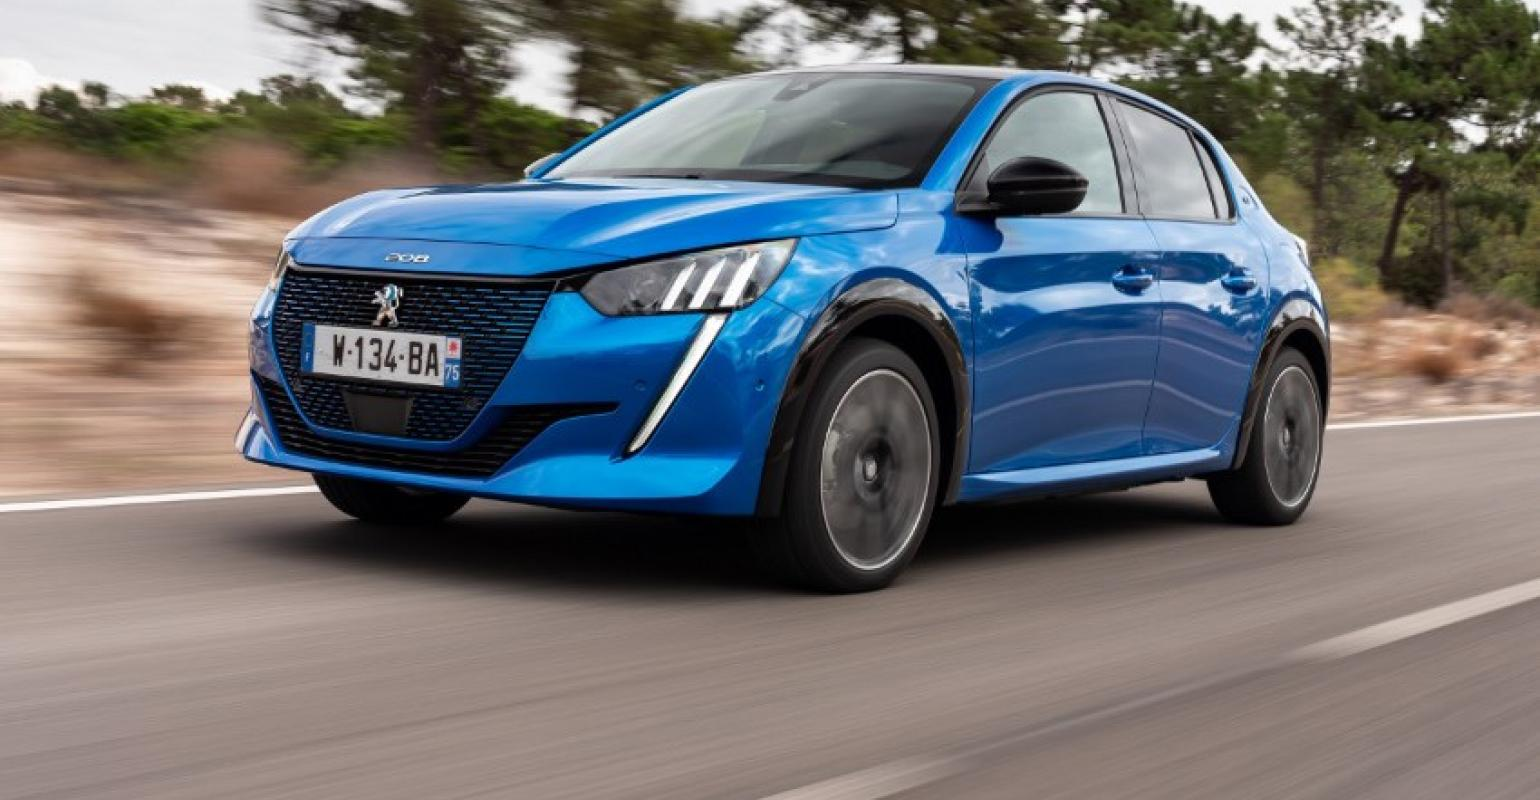 New-Gen Peugeot 208 Bids for Share of B-Segment | WardsAuto